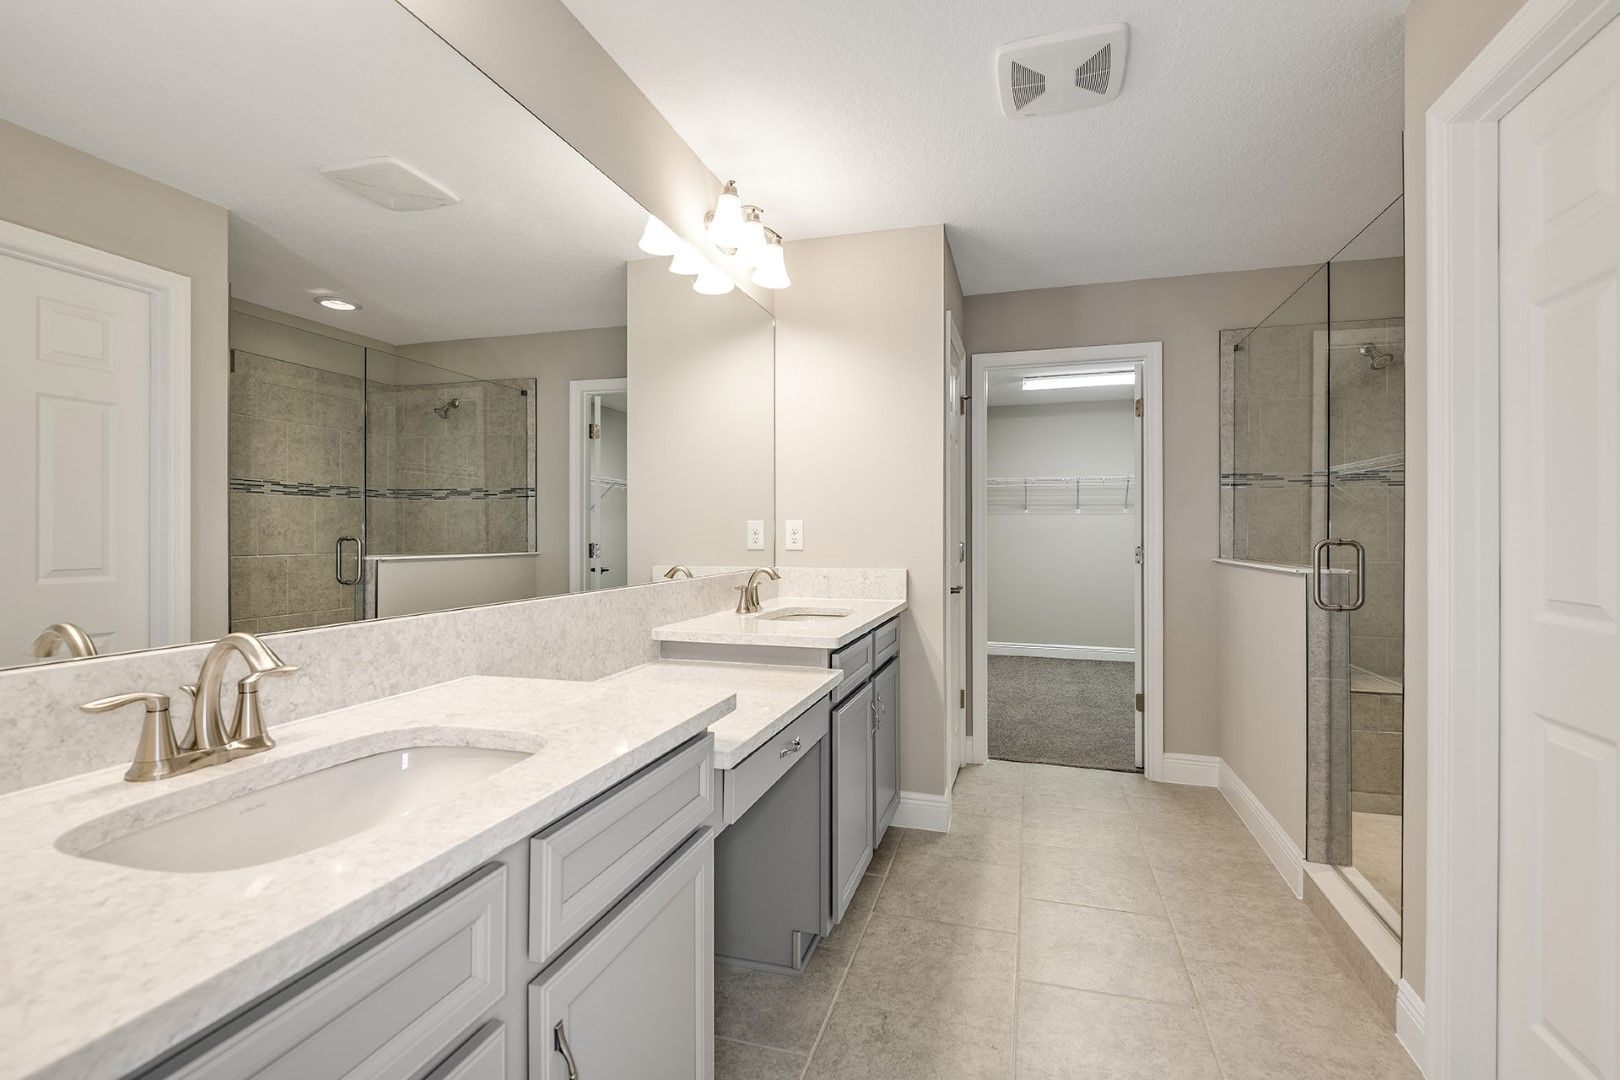 Bathroom featured in the Egret By Homes by WestBay in Tampa-St. Petersburg, FL